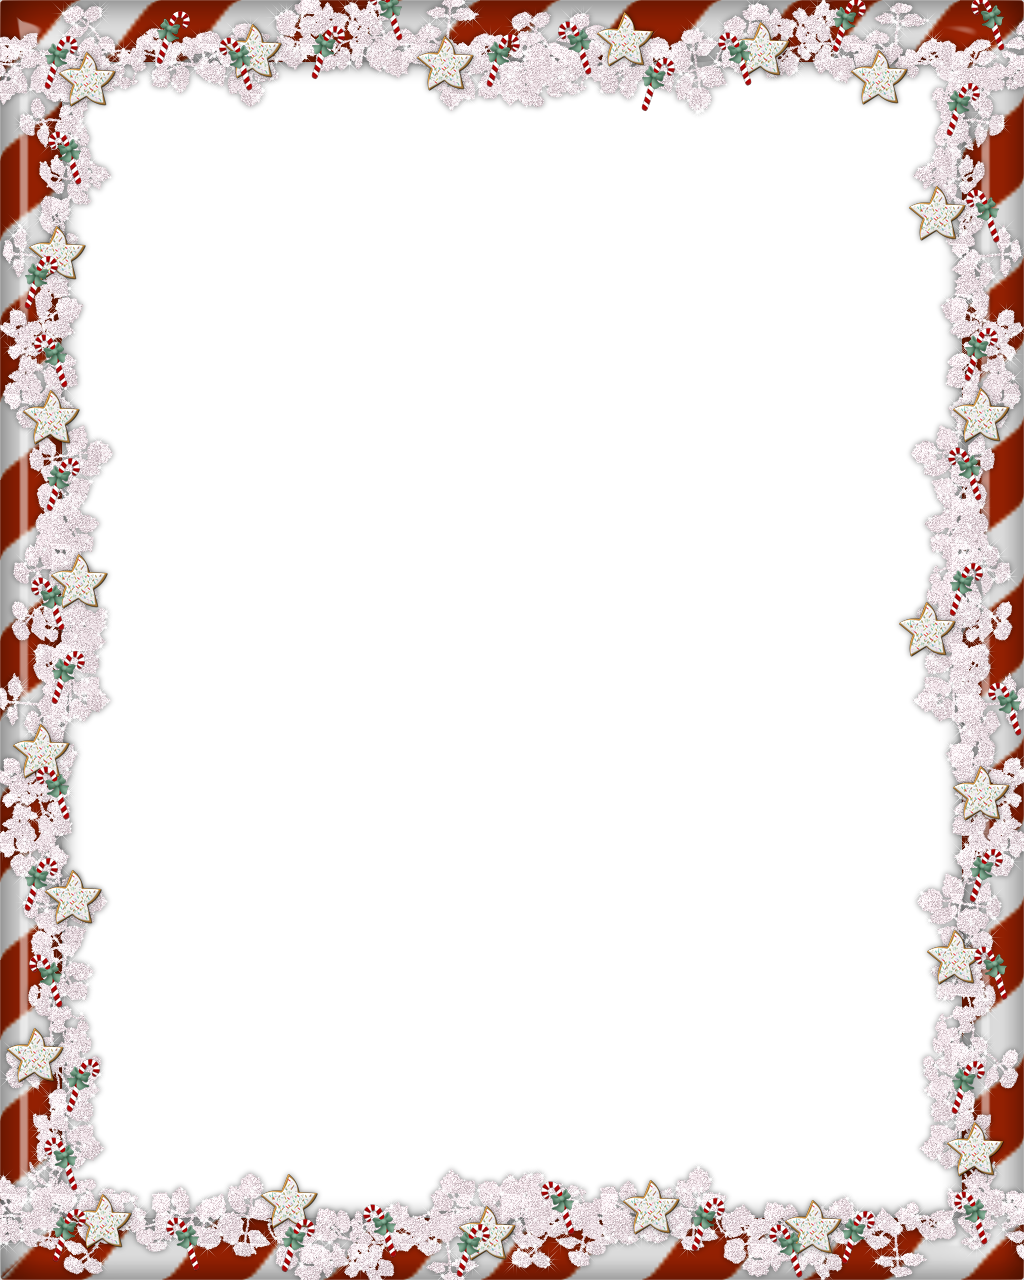 Frame Flower Border Christmas Exquisite Free Clipart HD PNG Image